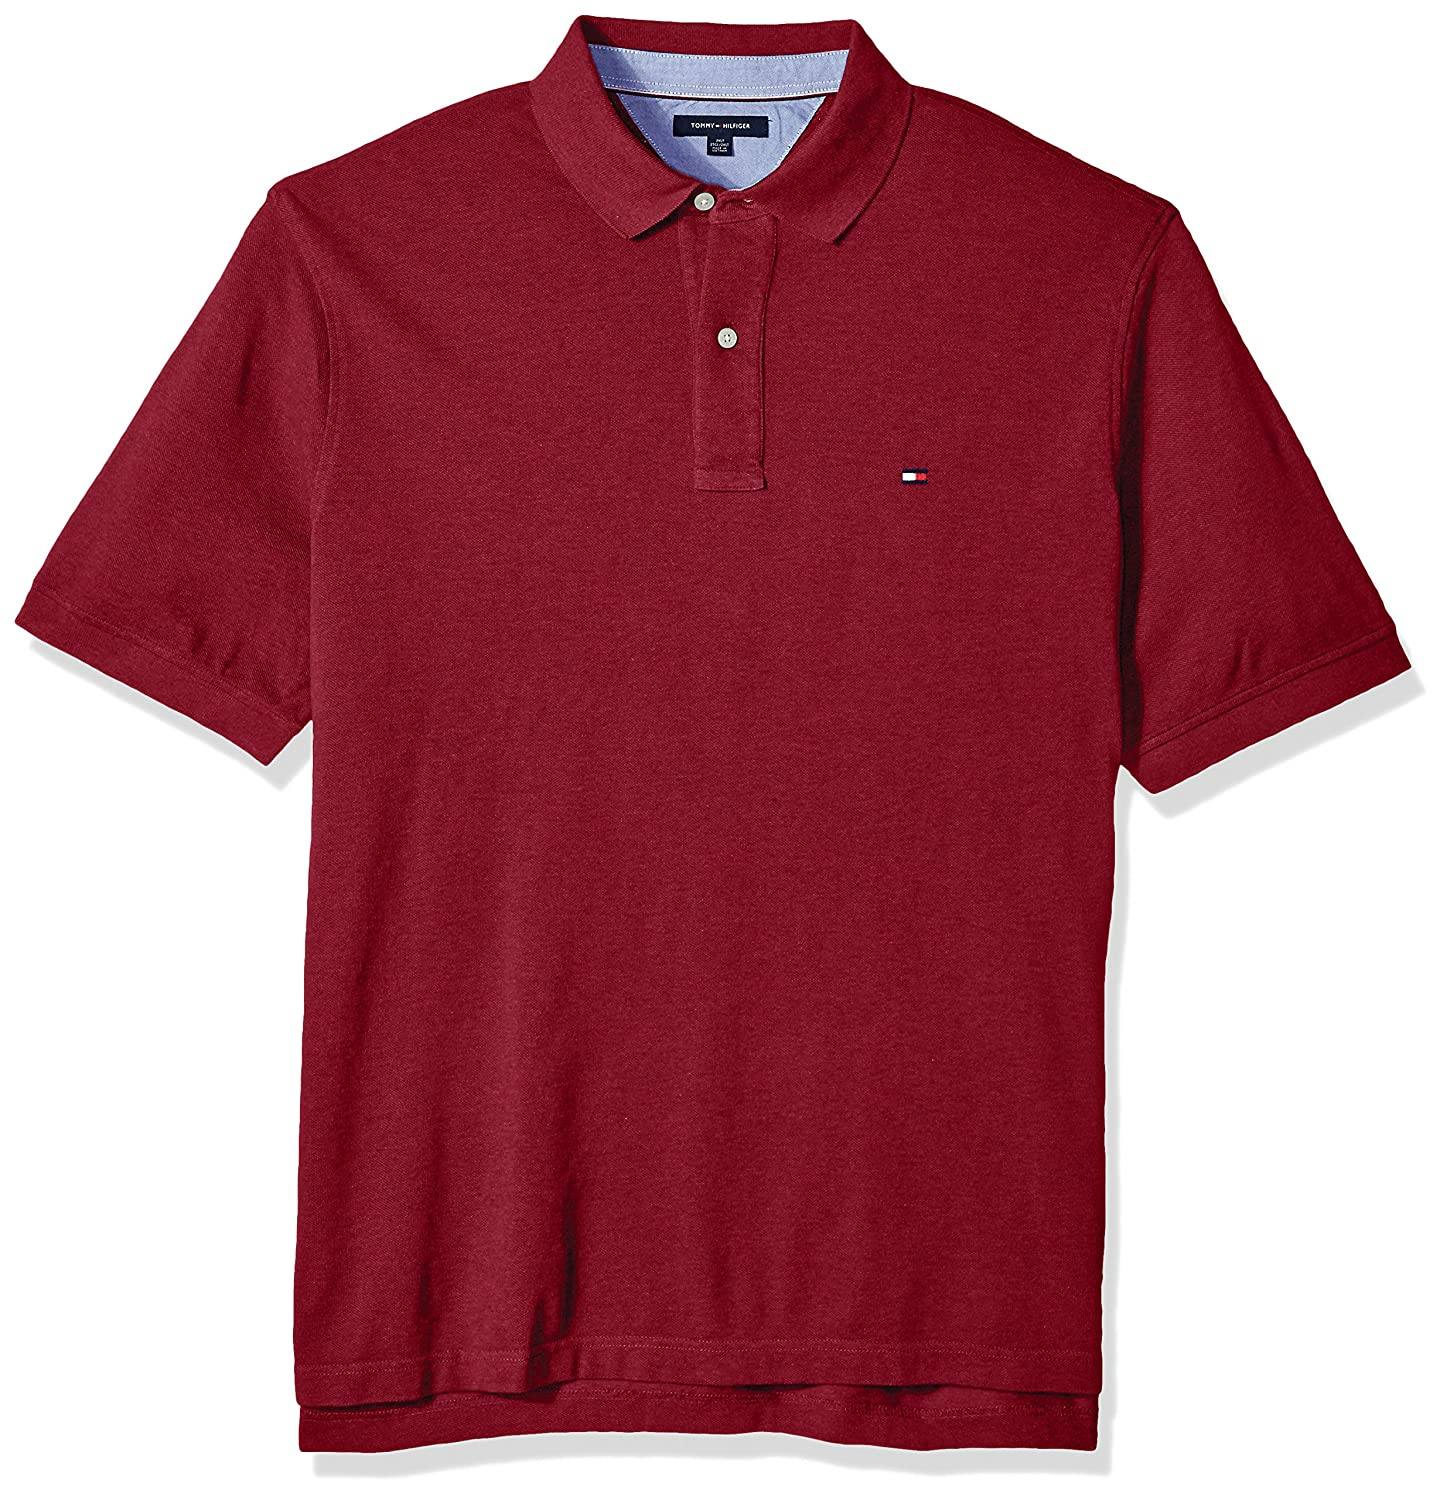 09d5364d Tommy Hilfiger big and tall polo shirt for men in our best-selling fit. Two  button placket. Tommy Hilfiger flag embroidery at chest. Soft feel